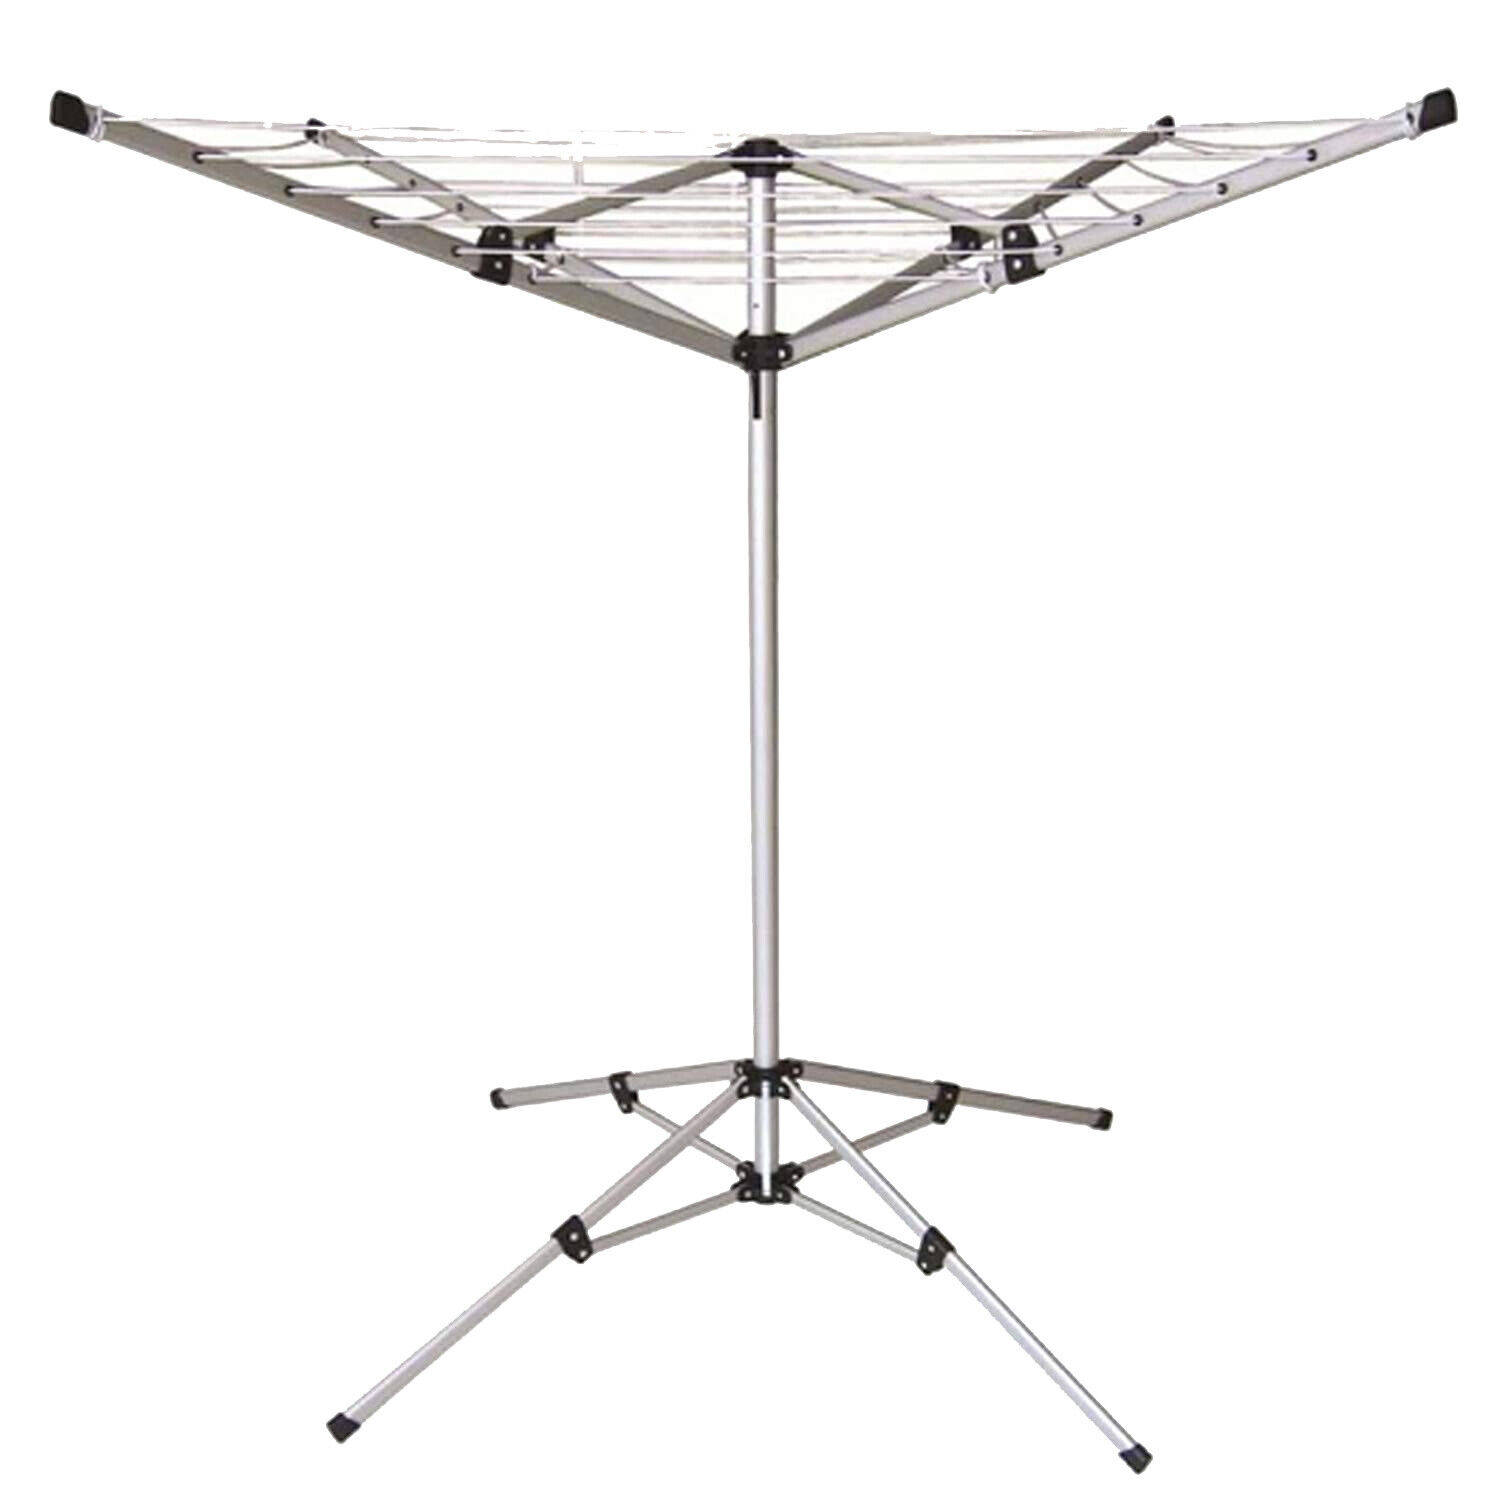 16M CLOTHES AIRER OUTDOOR INDOOR ROTARY WASHING LINE 4 ARM FREE STANDING LAUNDRY